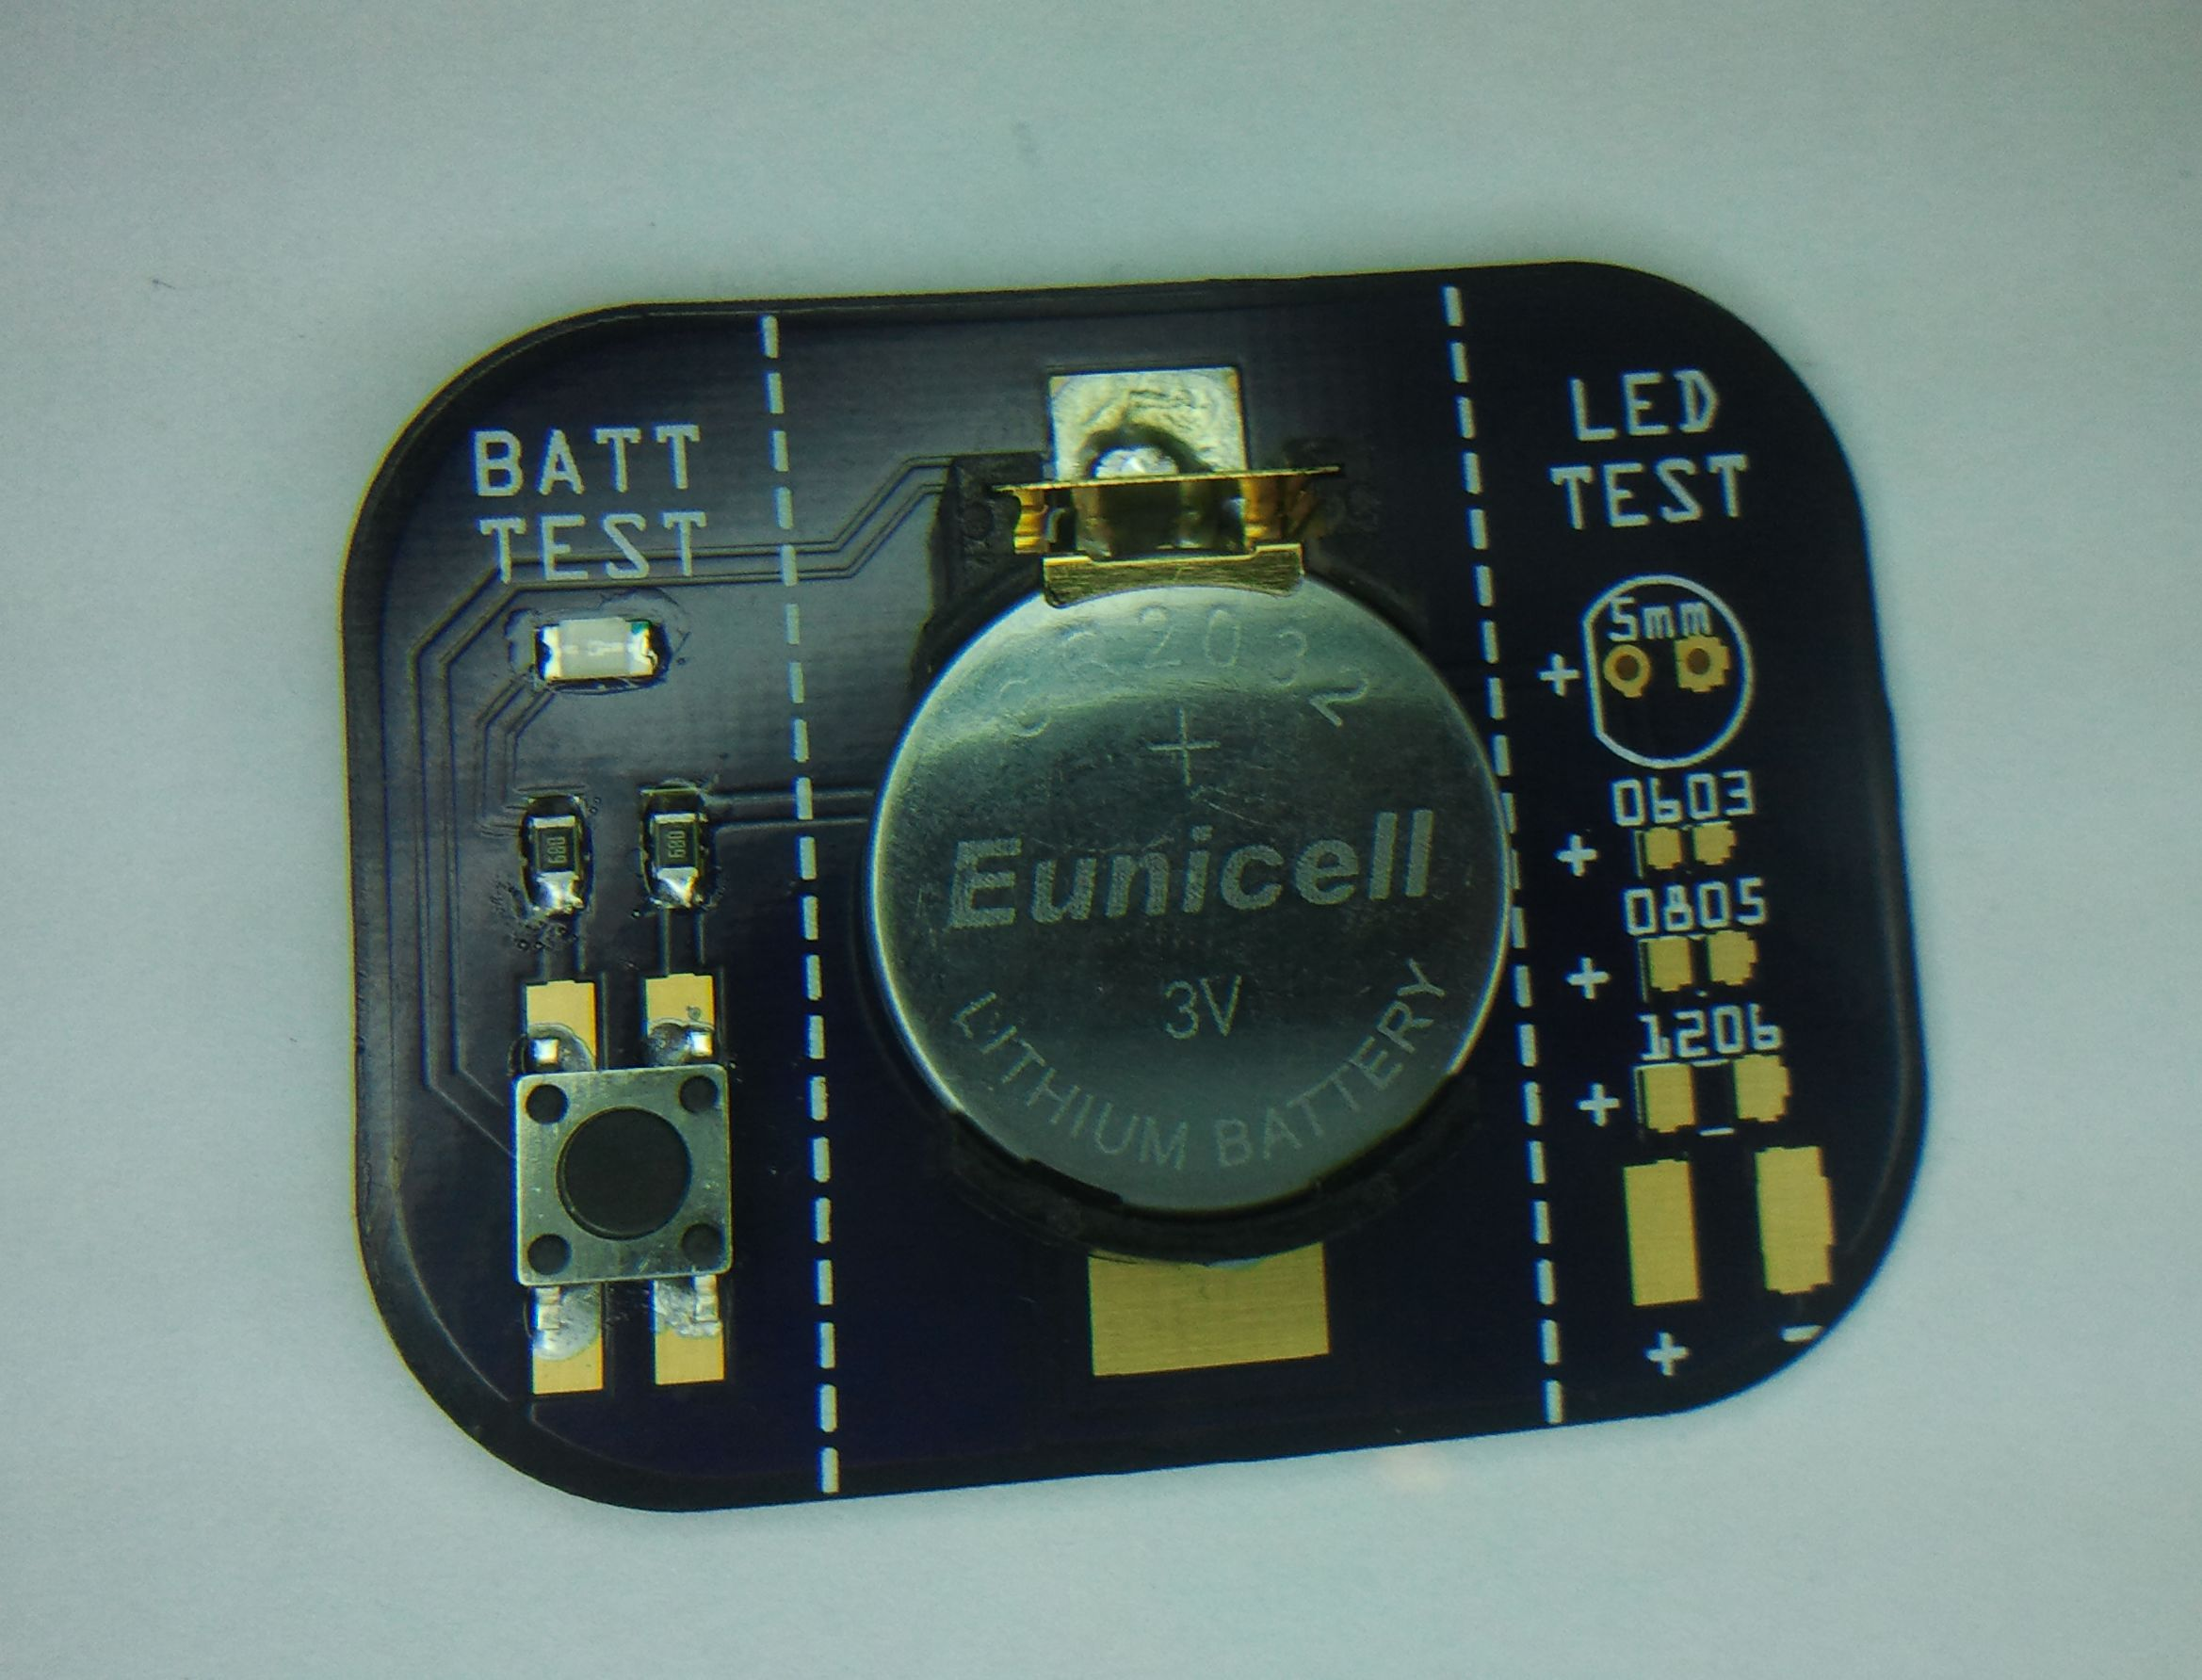 Simple SMD LED tester - Electronics-Lab